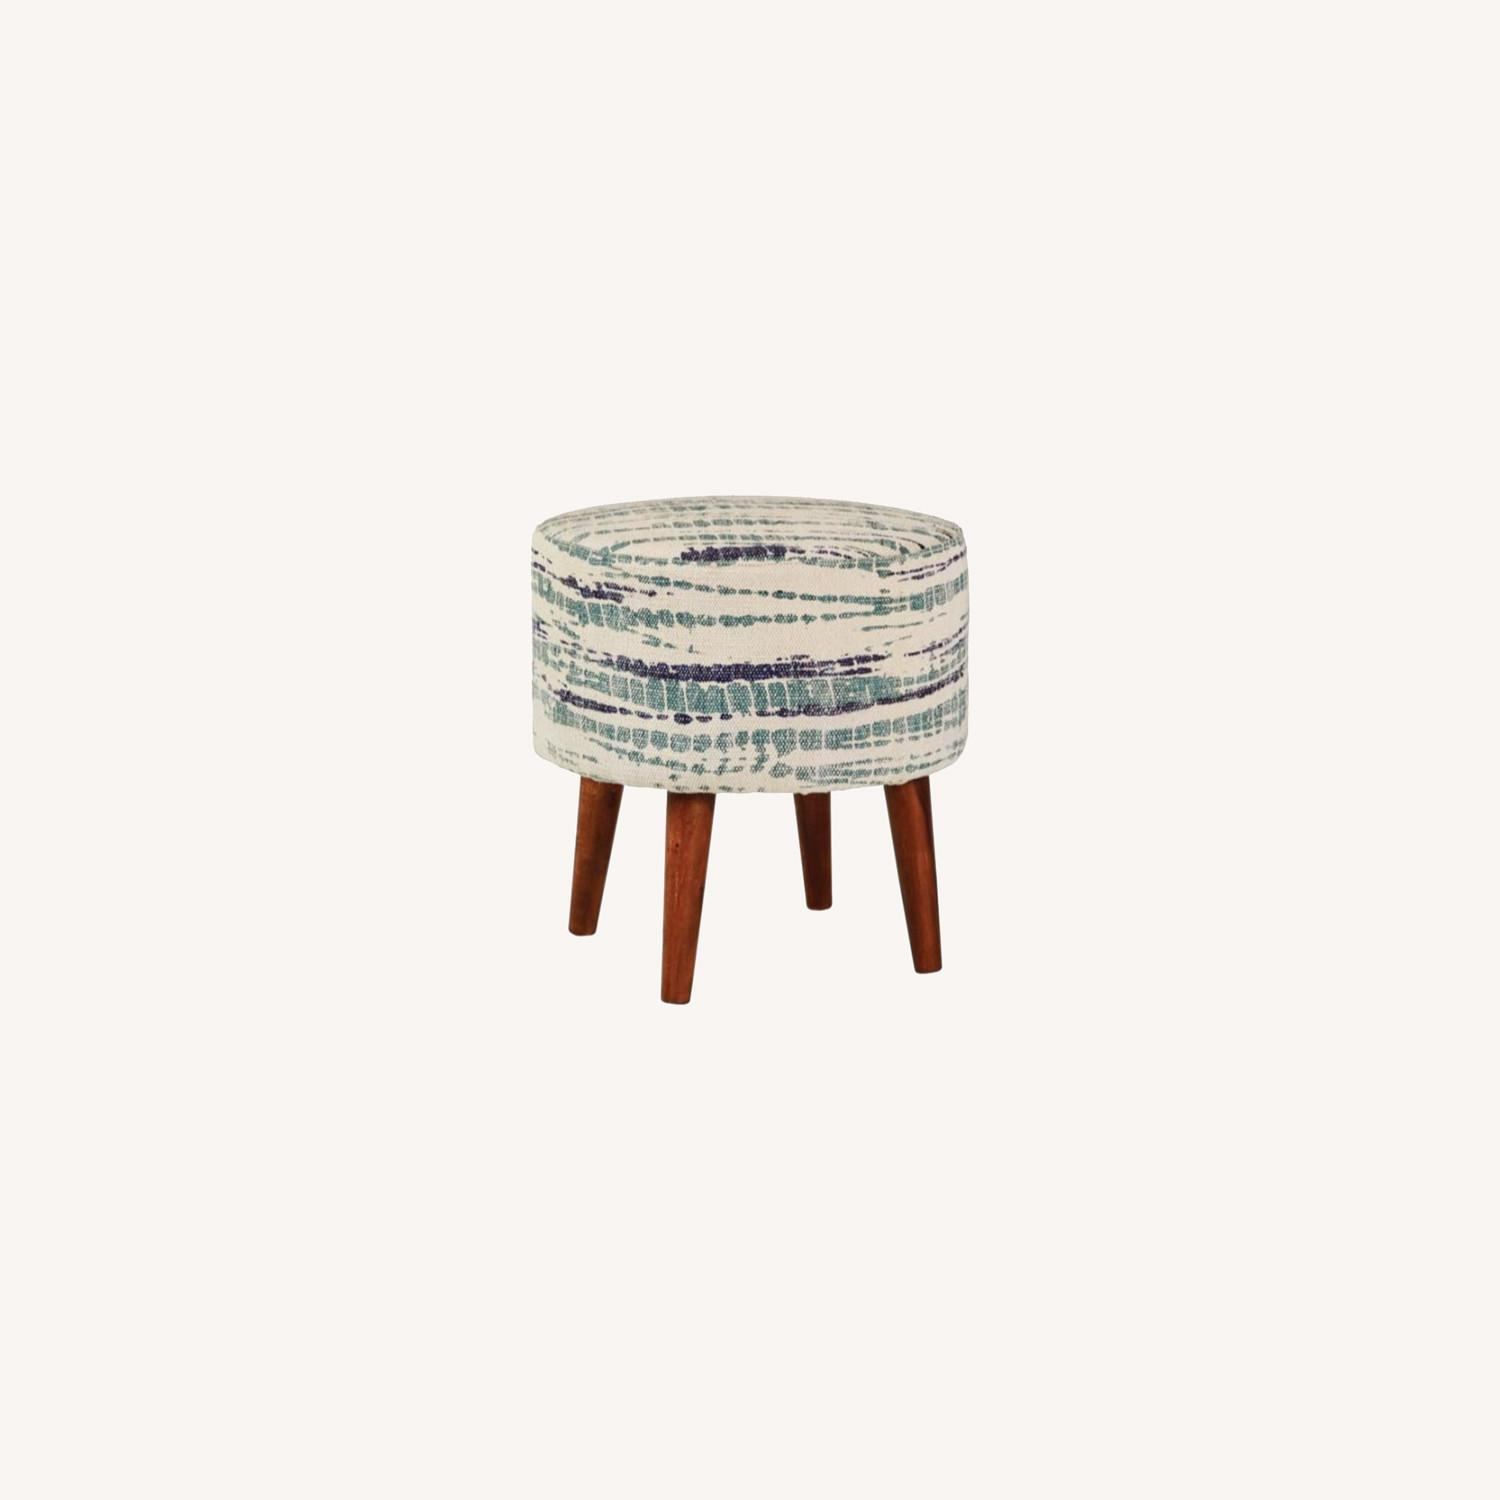 Accent Stool In Blue &White Patterned Woven Cotton - image-4